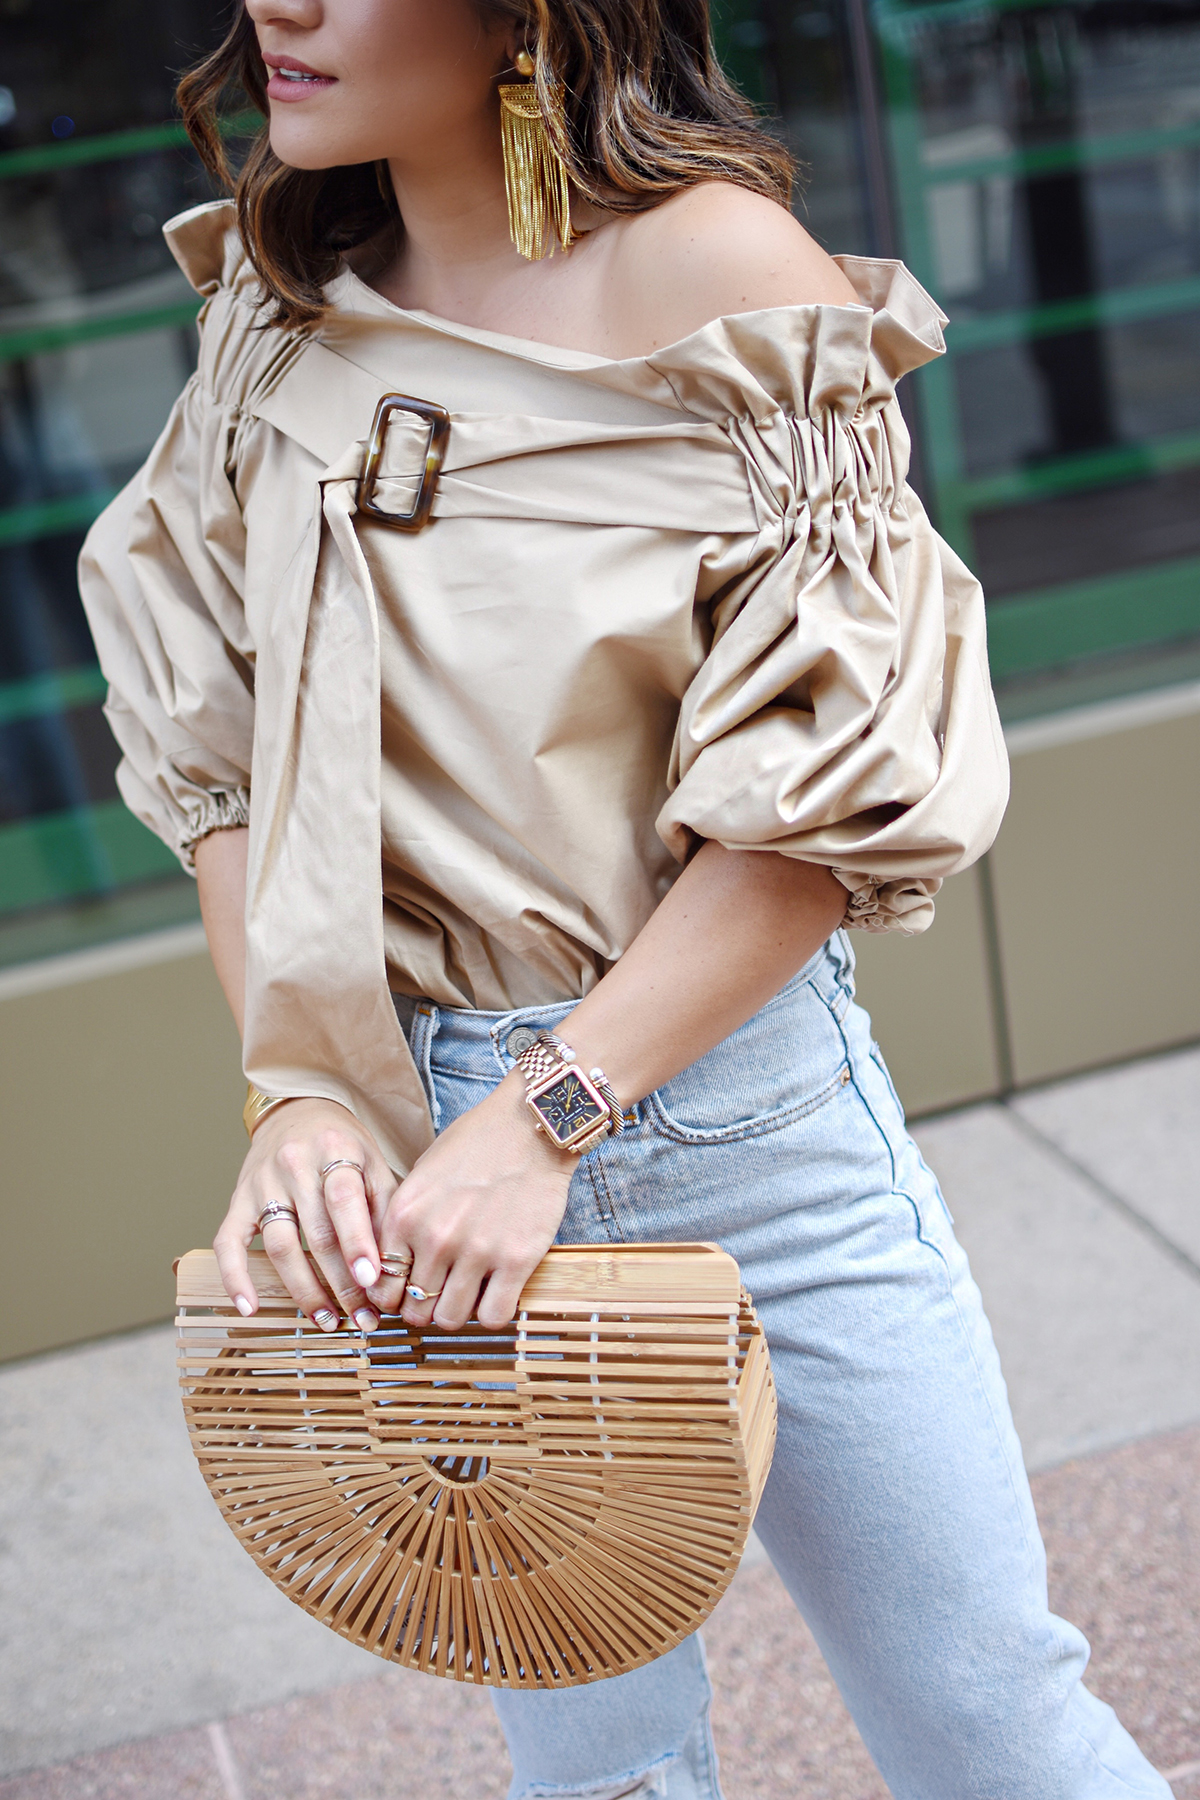 Carolina Hellal of Chic Talk wearing a Style Mafia beige belted top, 501 levis , cultagaia ark bag and steve madden strap sandals